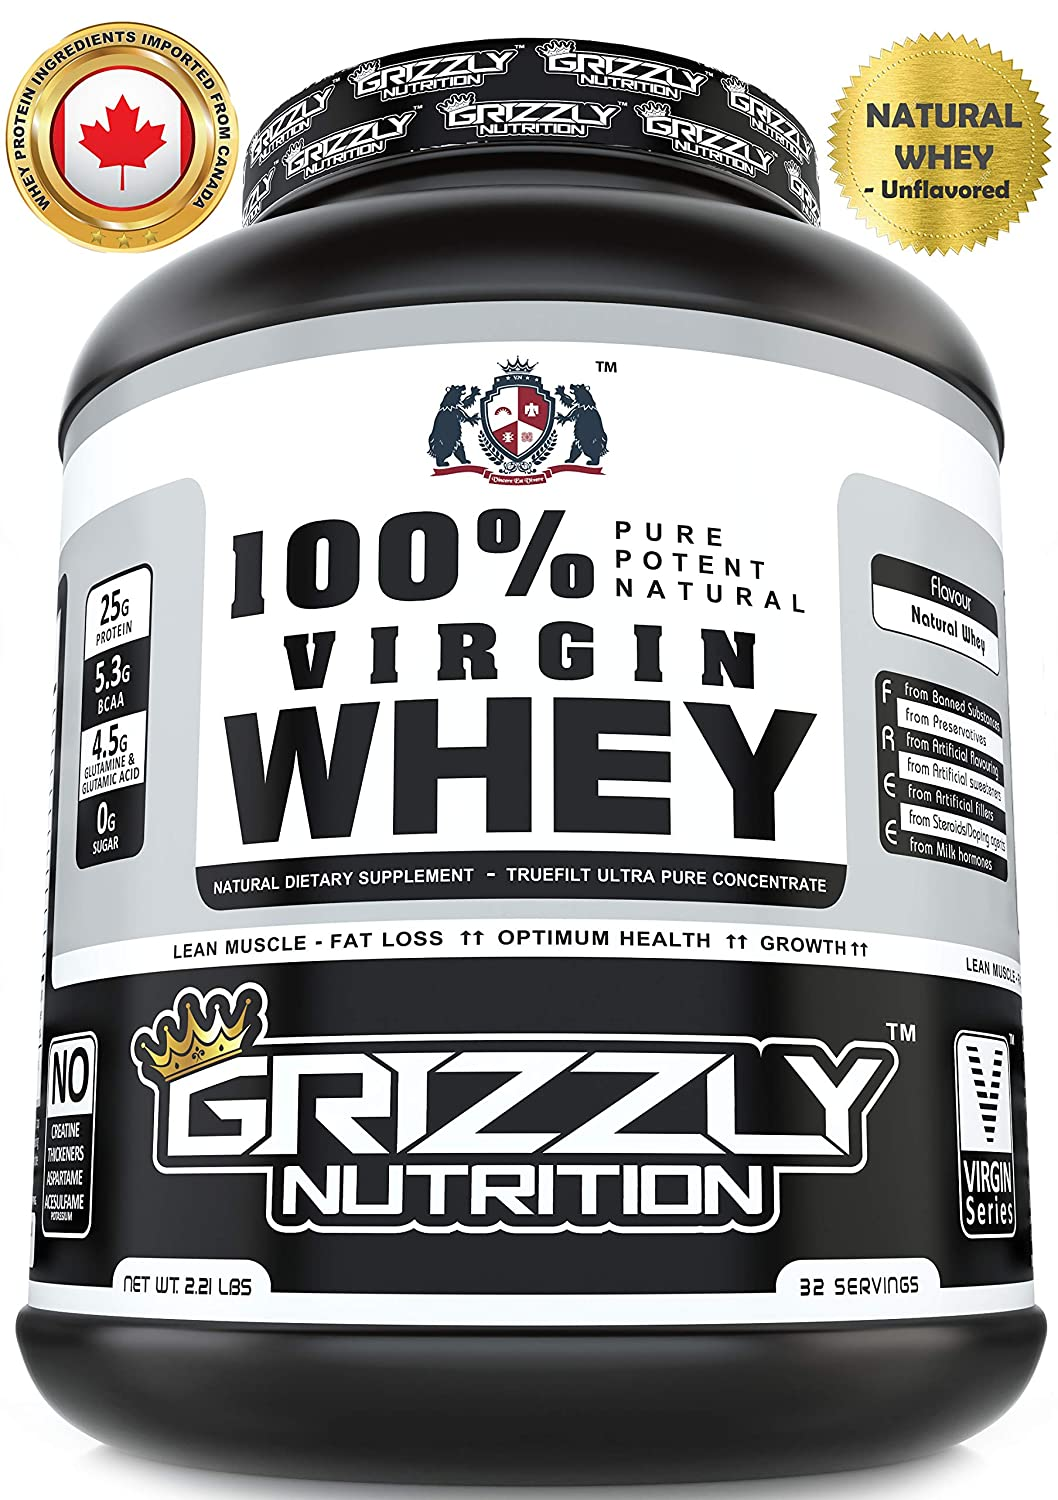 Grizzly Nutrition - 100% Virgin whey protein